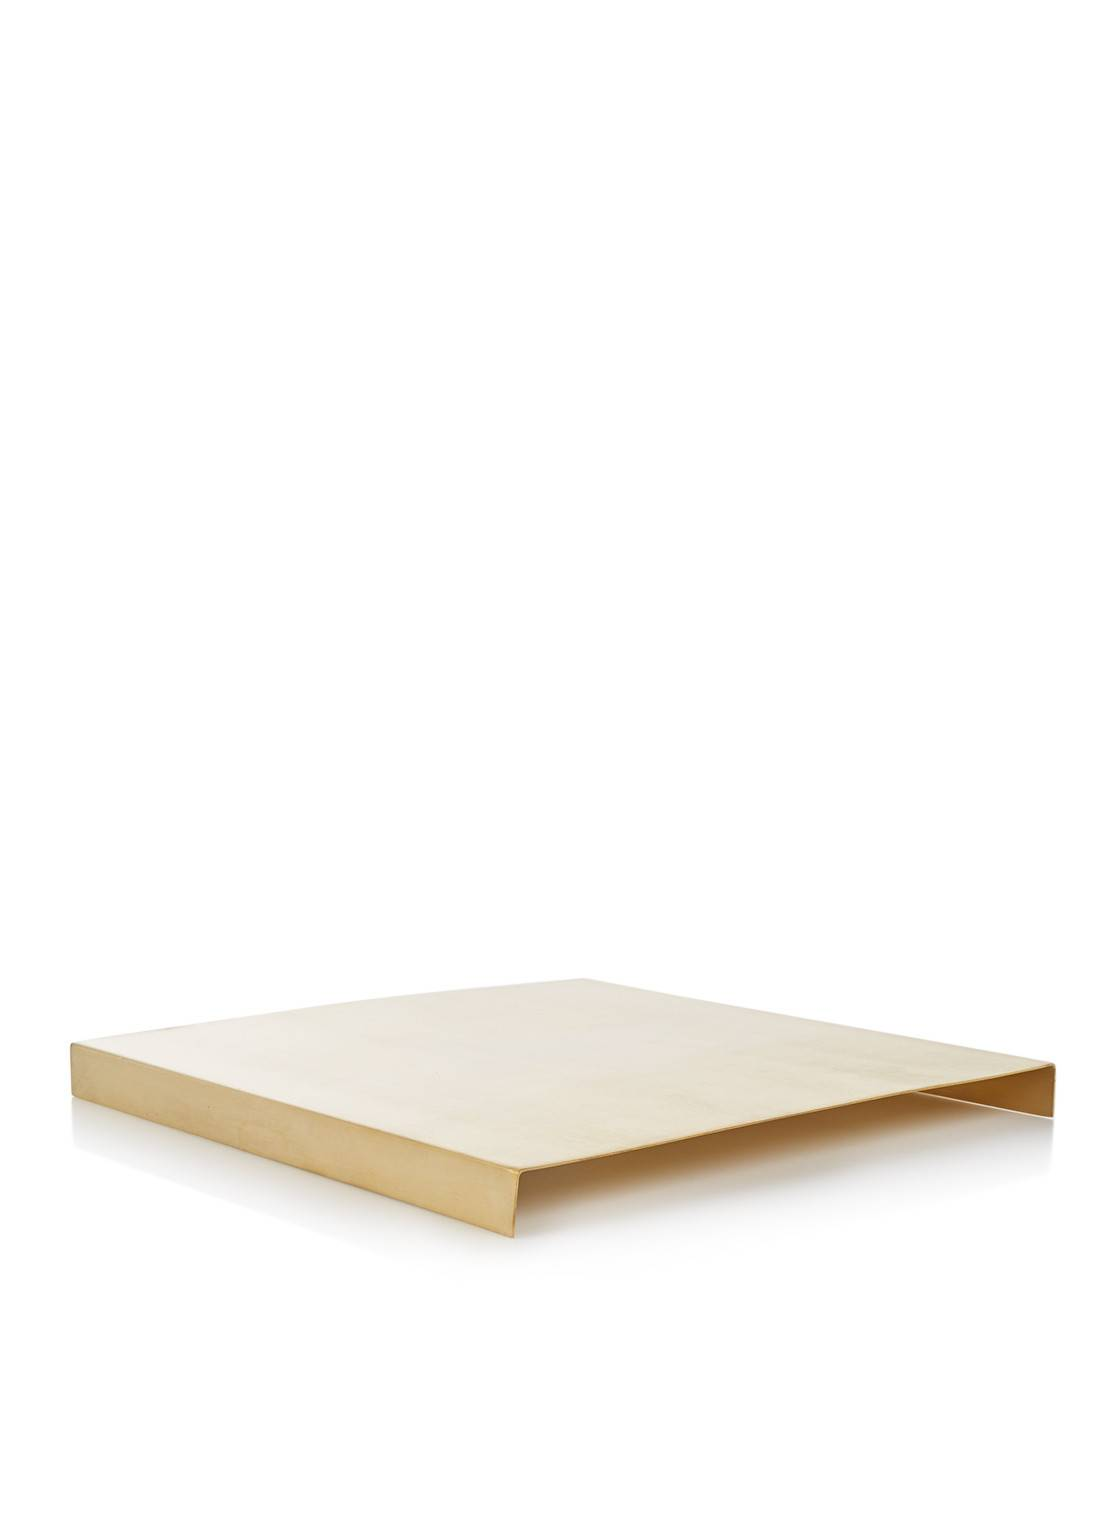 ferm living Tray Box extension pot de fleurs en laiton 26 cm - Or